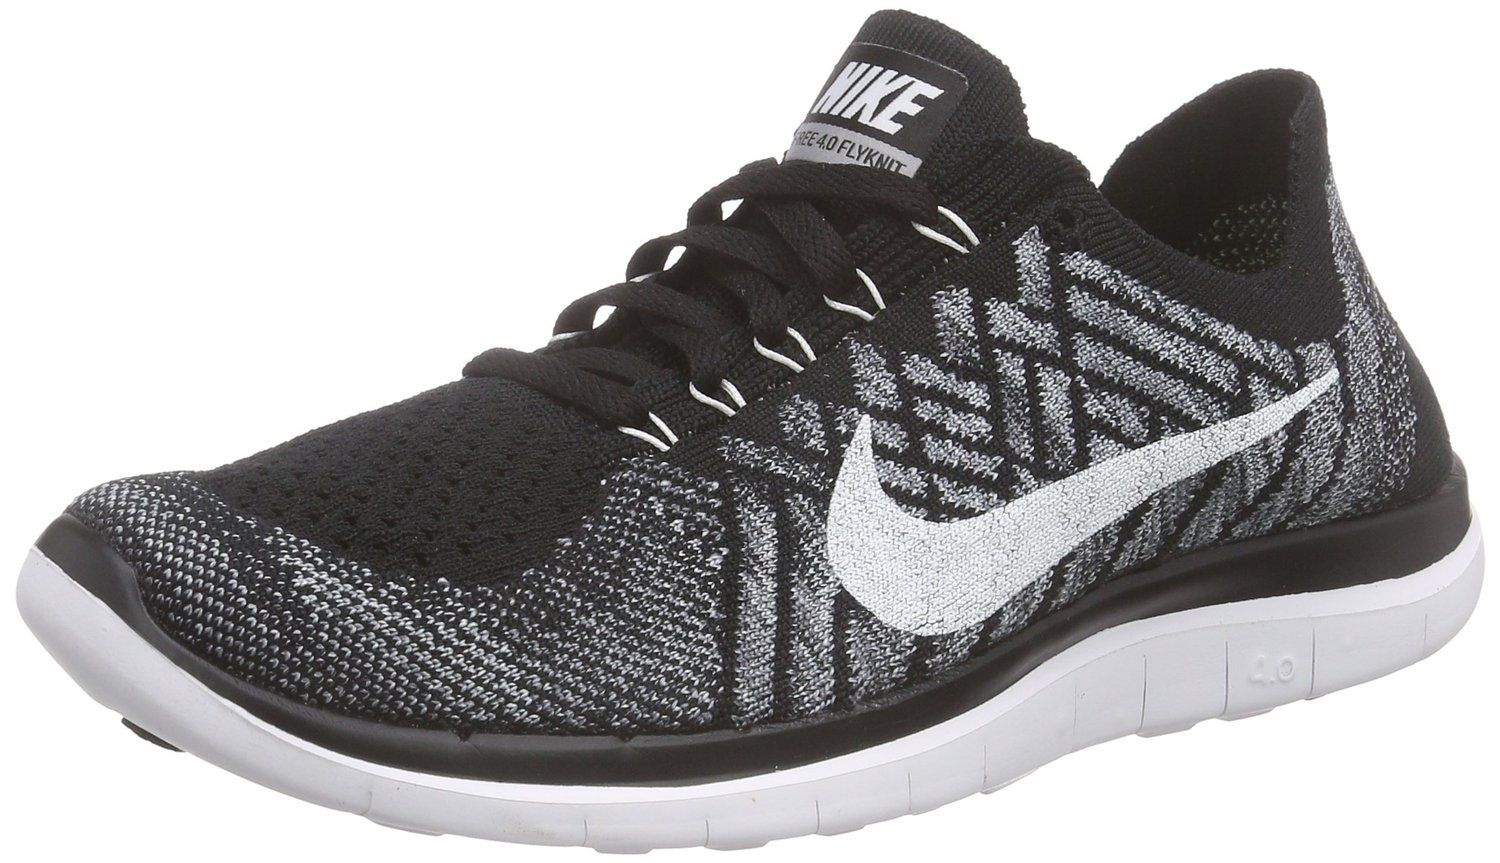 Nike Men's Free Flyknit Running Shoes